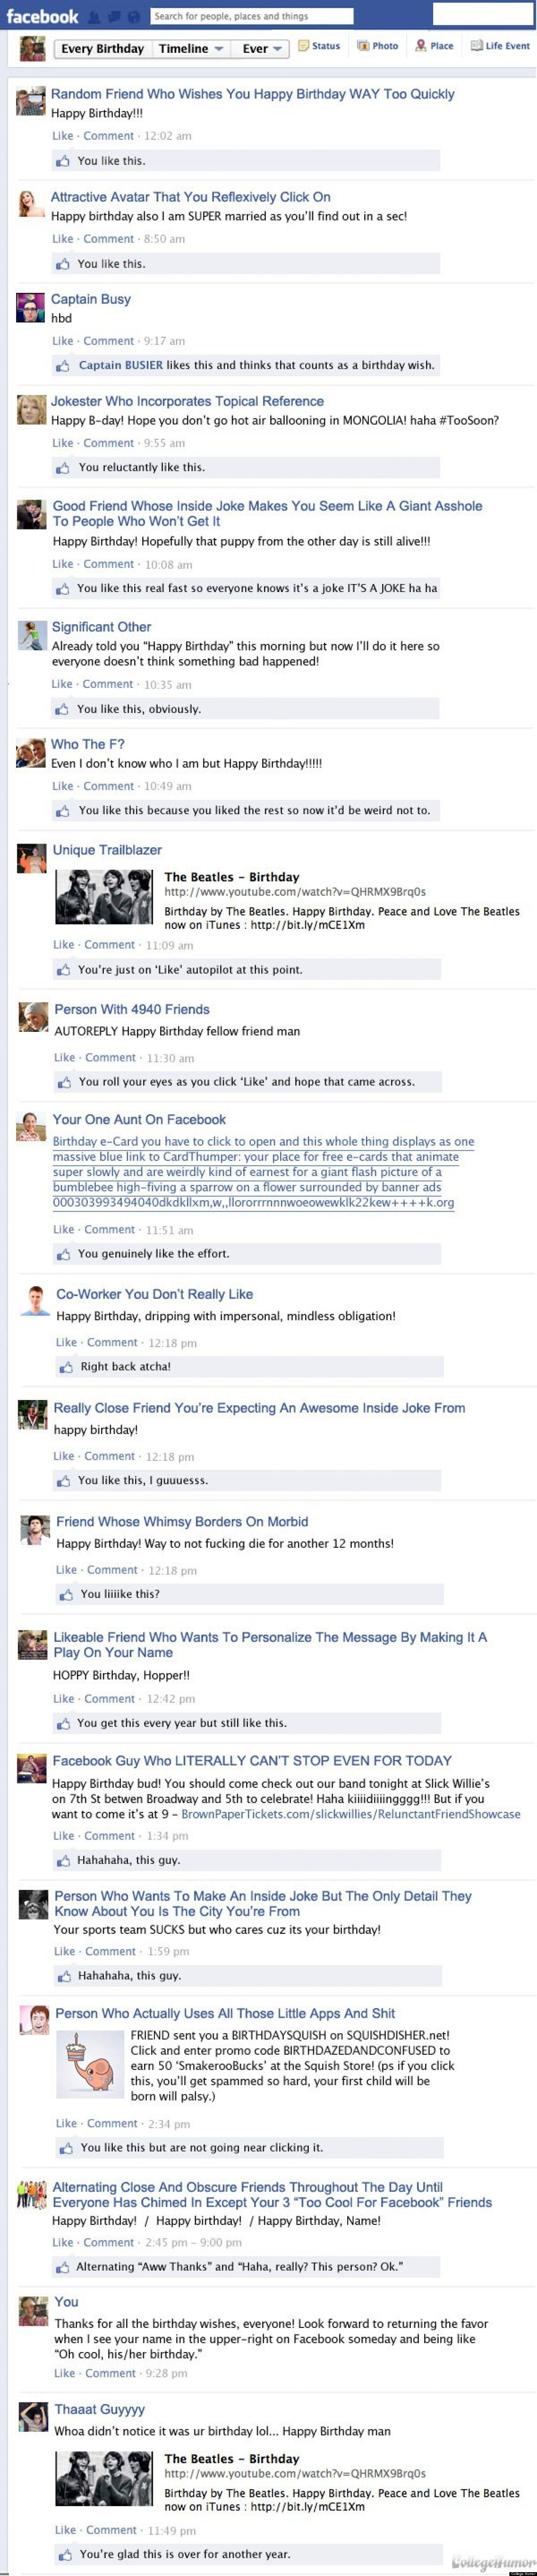 College Humor has pretty much nailed it. This is what your facebook wall looked like on your last birthday, too, isnt it?